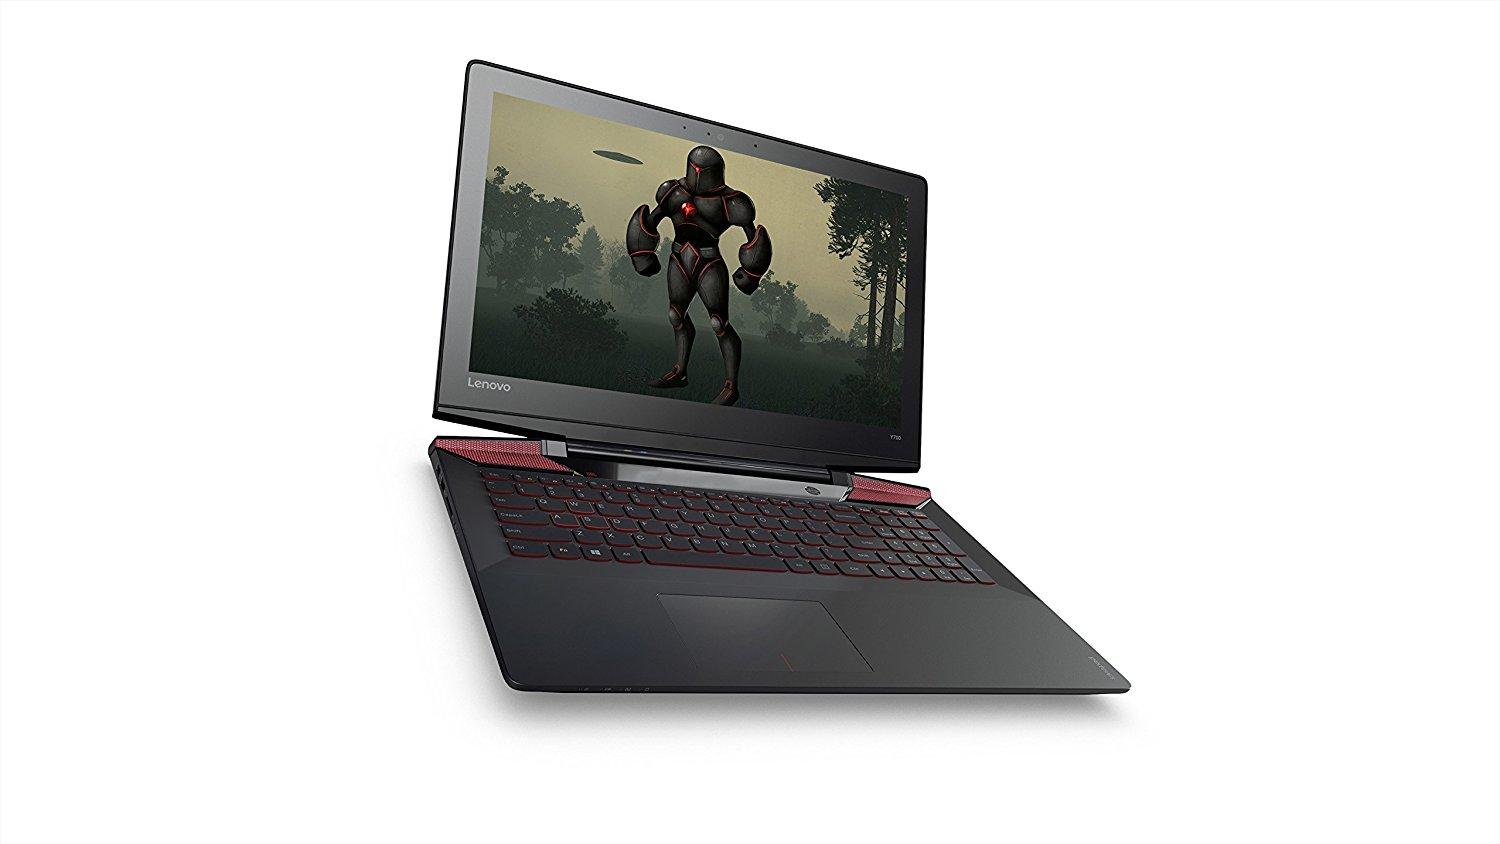 "Lenovo Y700 15.6"" Laptop, Black (Intel Core i7-6700HQ, 8GB, 1TB HDD + 128GB SSD, NVIDIA GeForce GTX 960M, Windows 10) 80NW0034US"